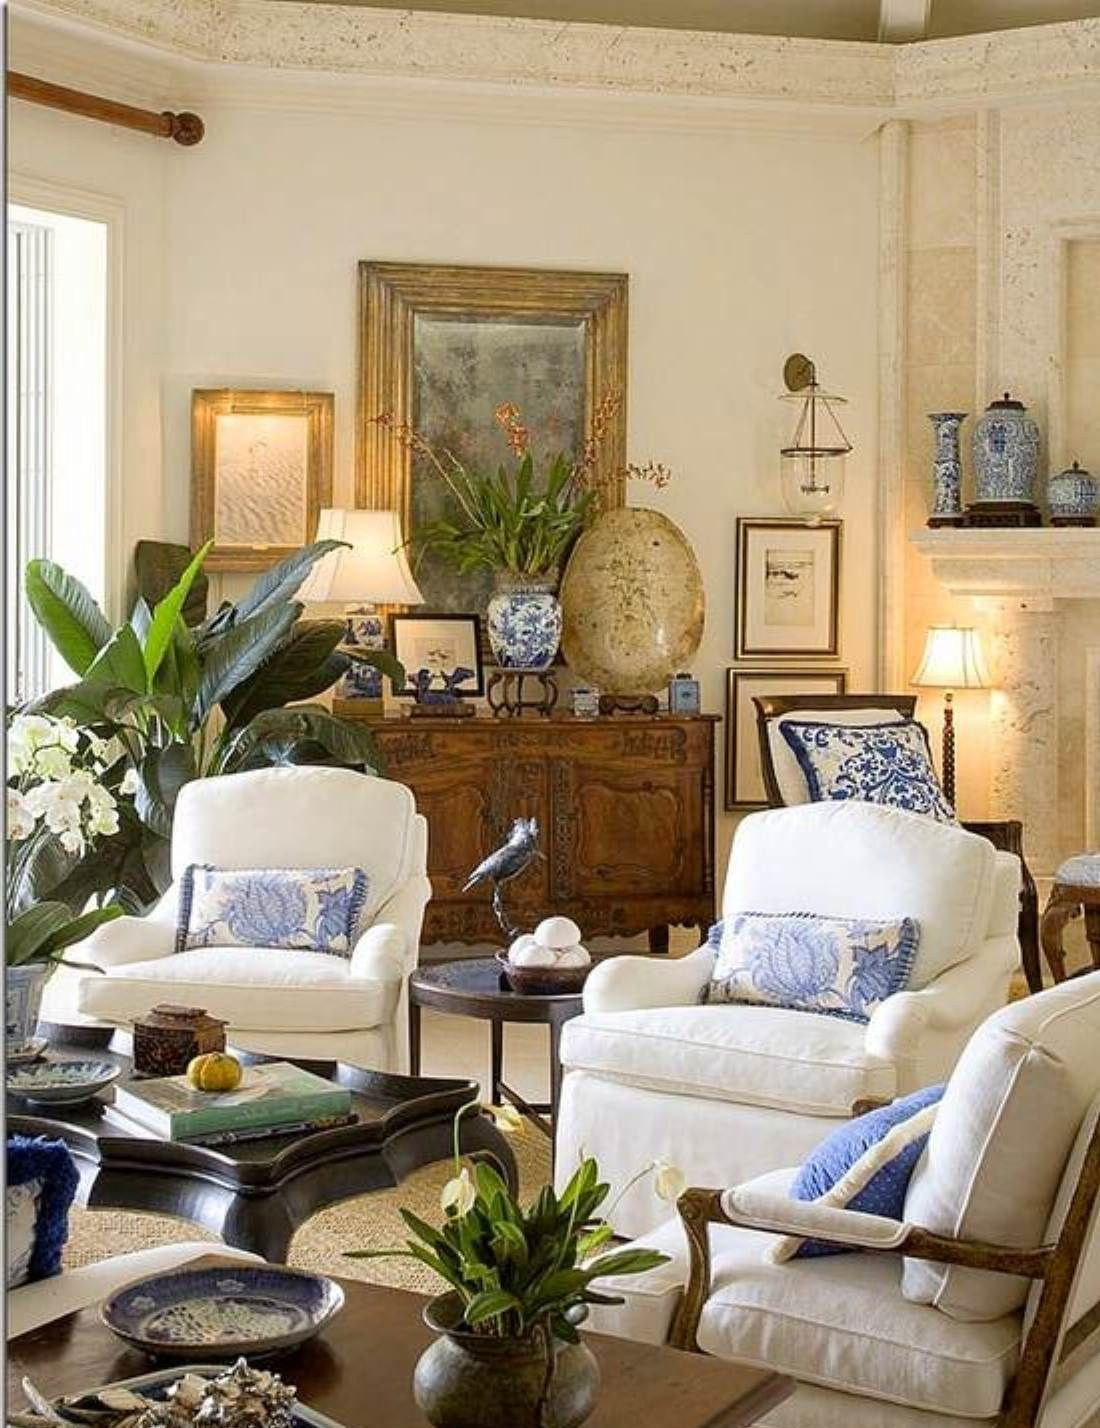 Better homes and gardens living room ideas - Traditional Living Room Decorating Ideas